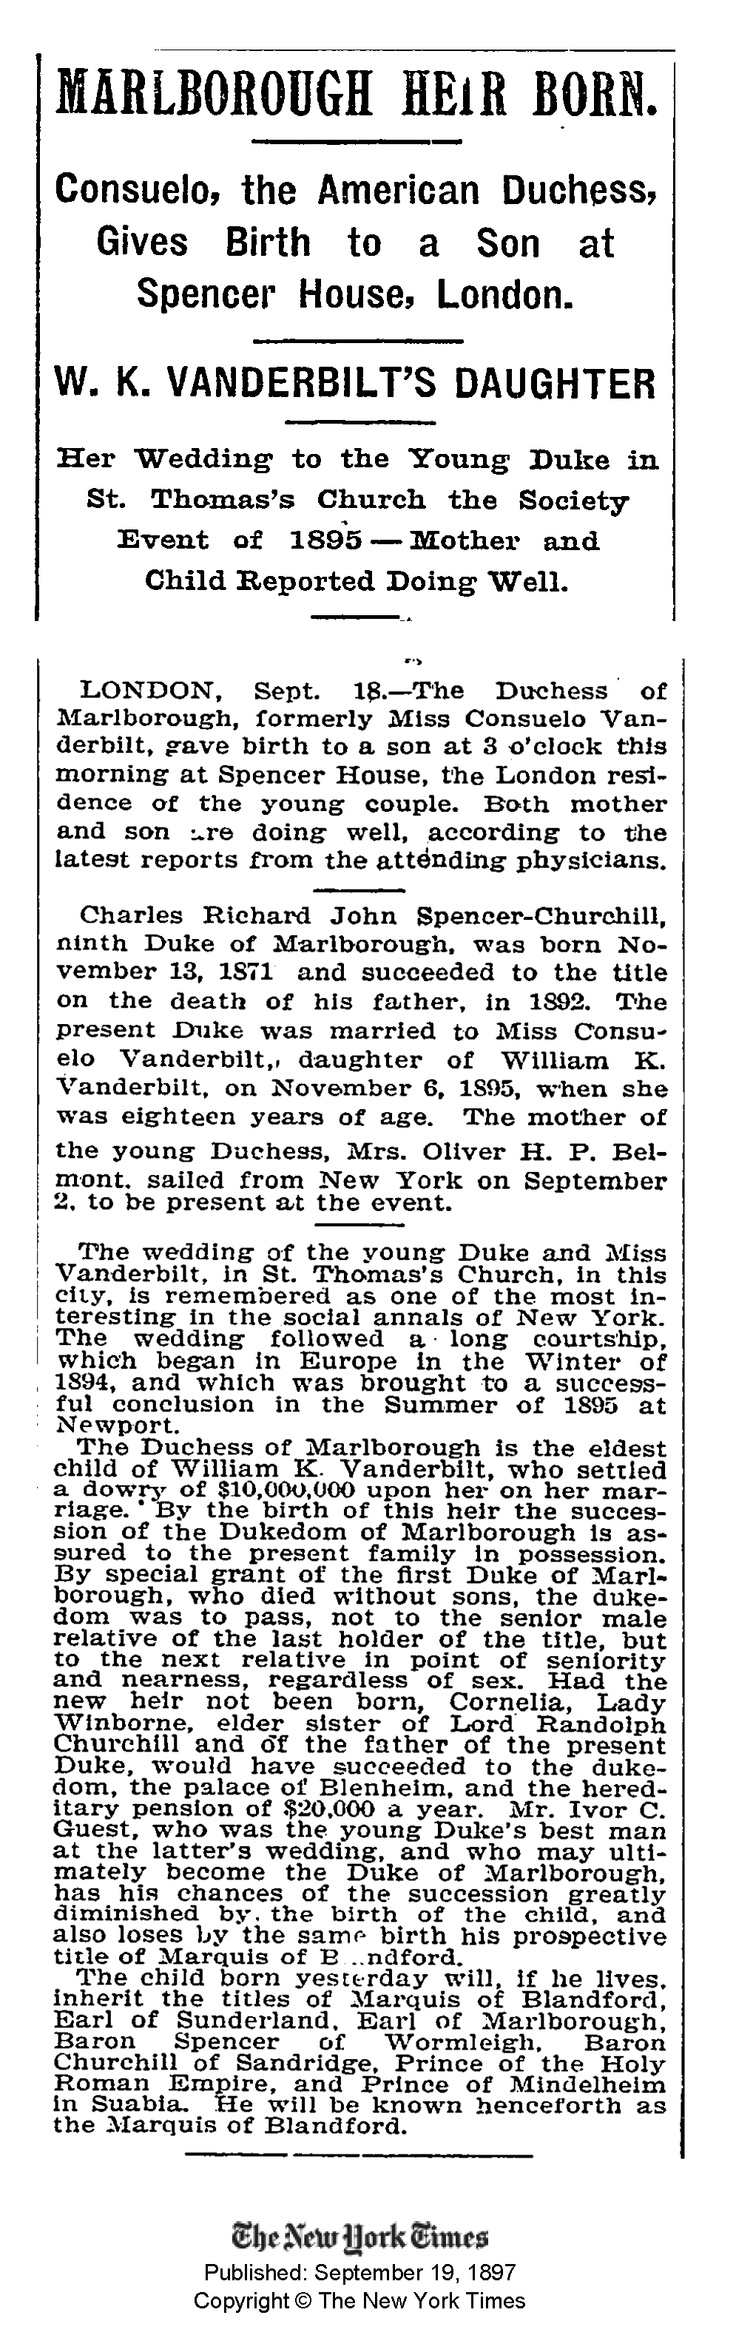 Nyc apartment cooper and vanderbilt at carter s funeral service above - Marlborough Heir Born Consuelo The American Duchess Gives Birth To A Son At Spencer House London W K Vanderbilt S Daughter Her Wedding To The Young